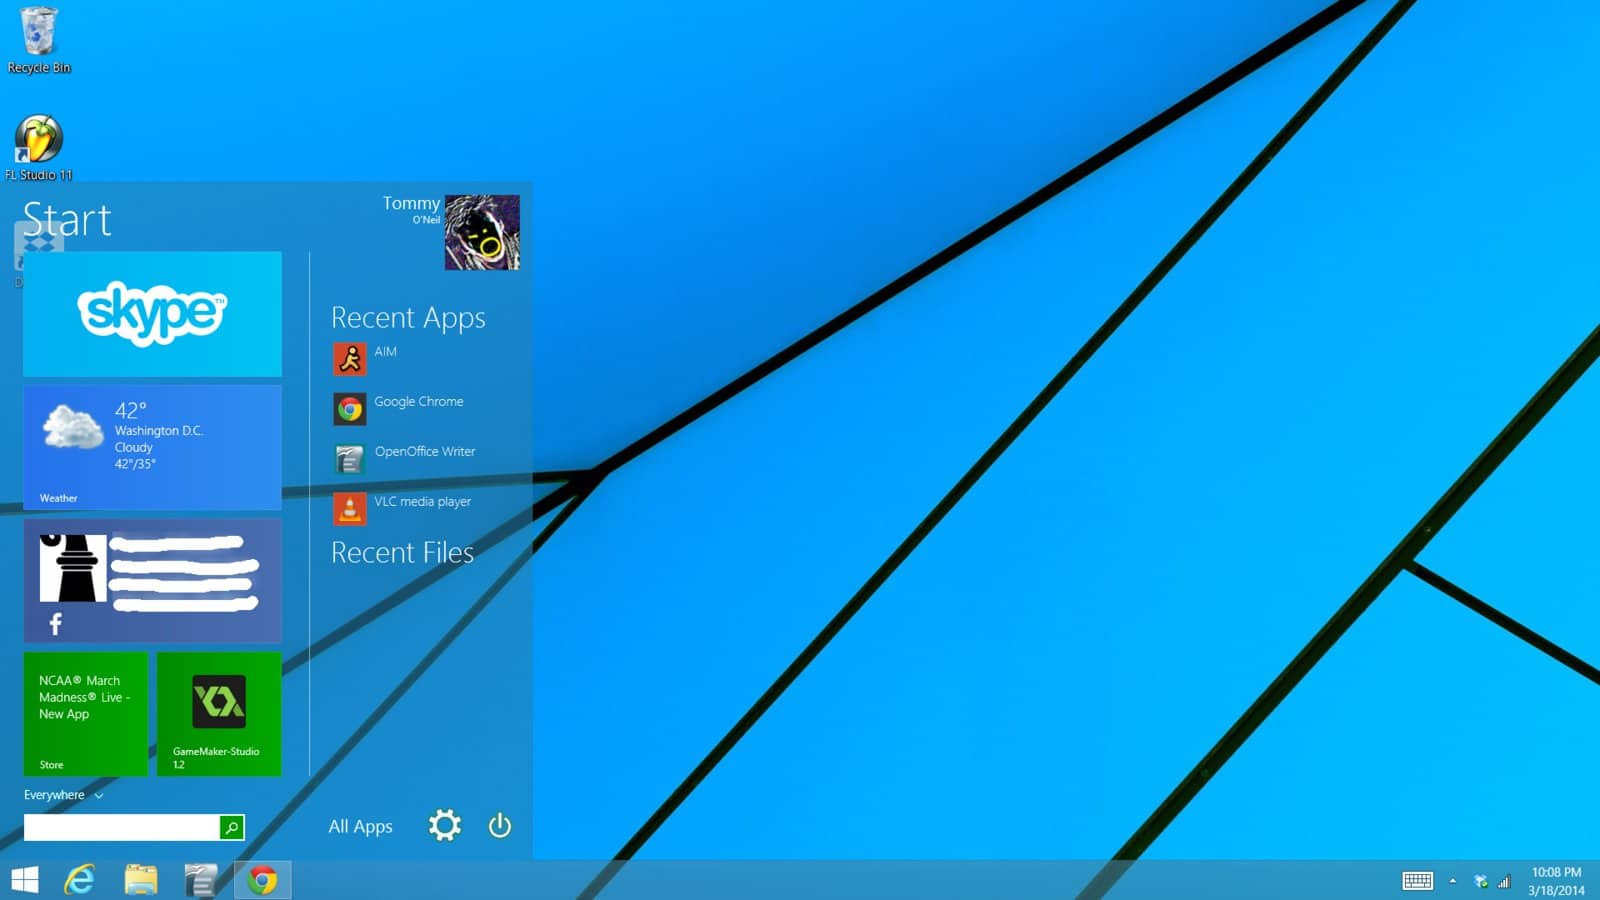 Windows 8 Updates on Hold, Windows 9 May Be Full Steam Ahead